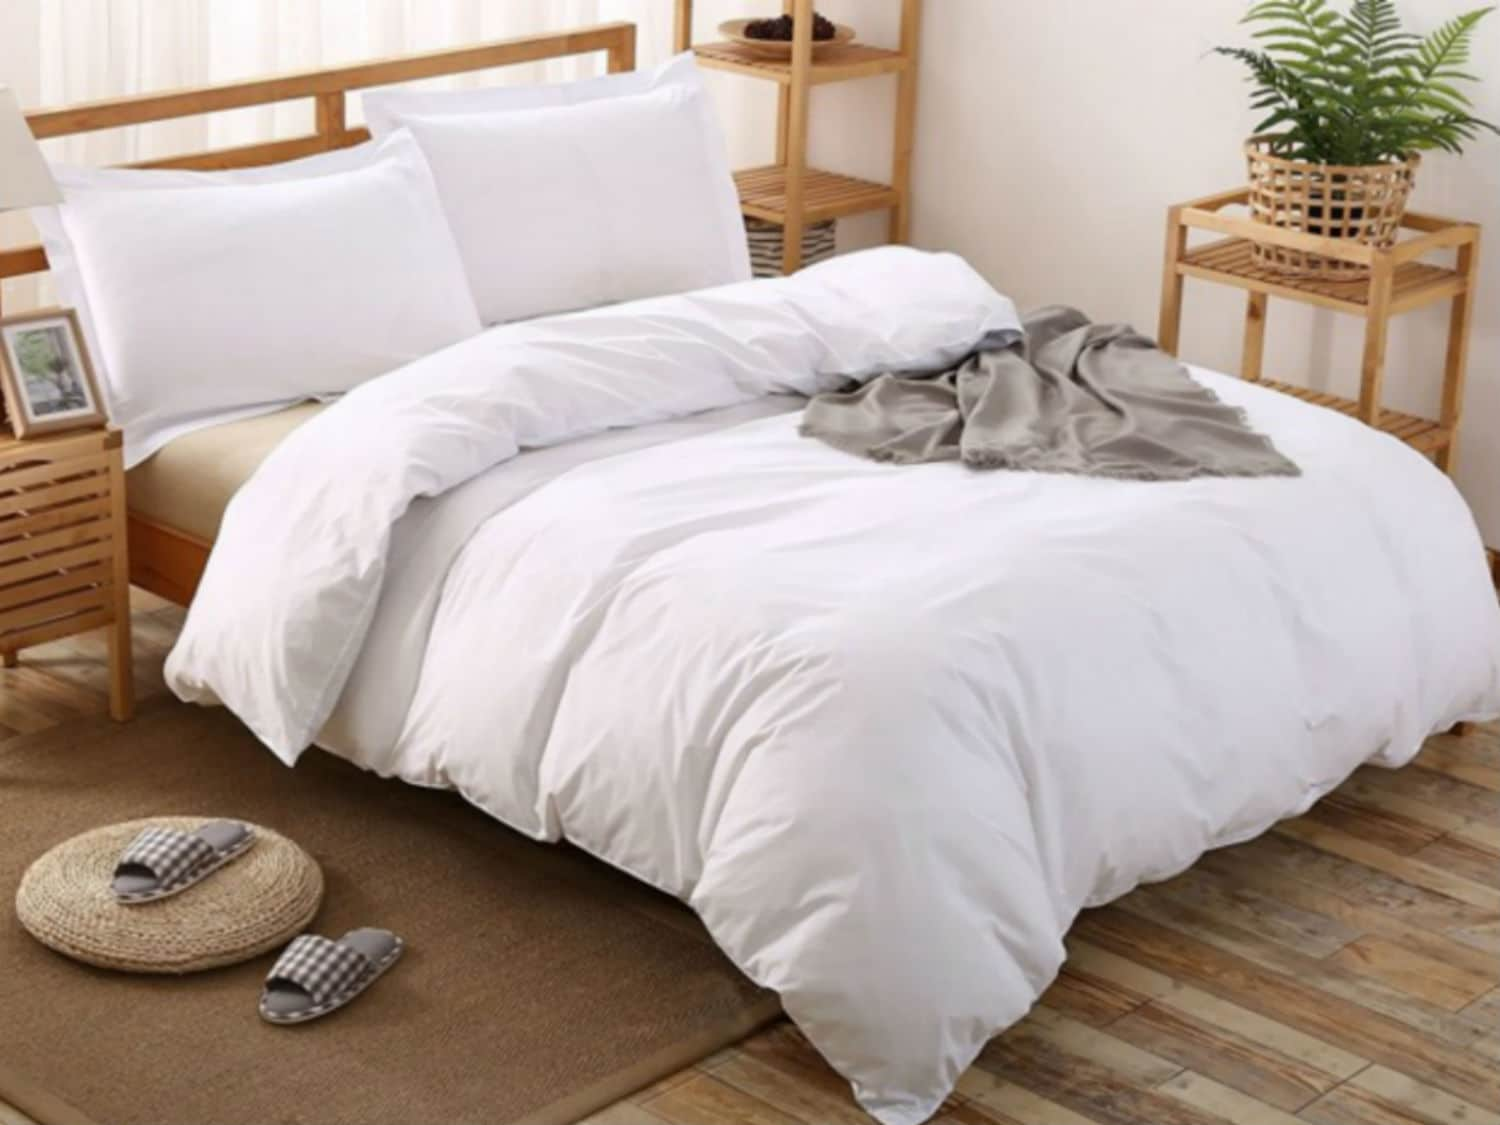 Cotton Duvet Cover With Corner Ties Comforter Cover White